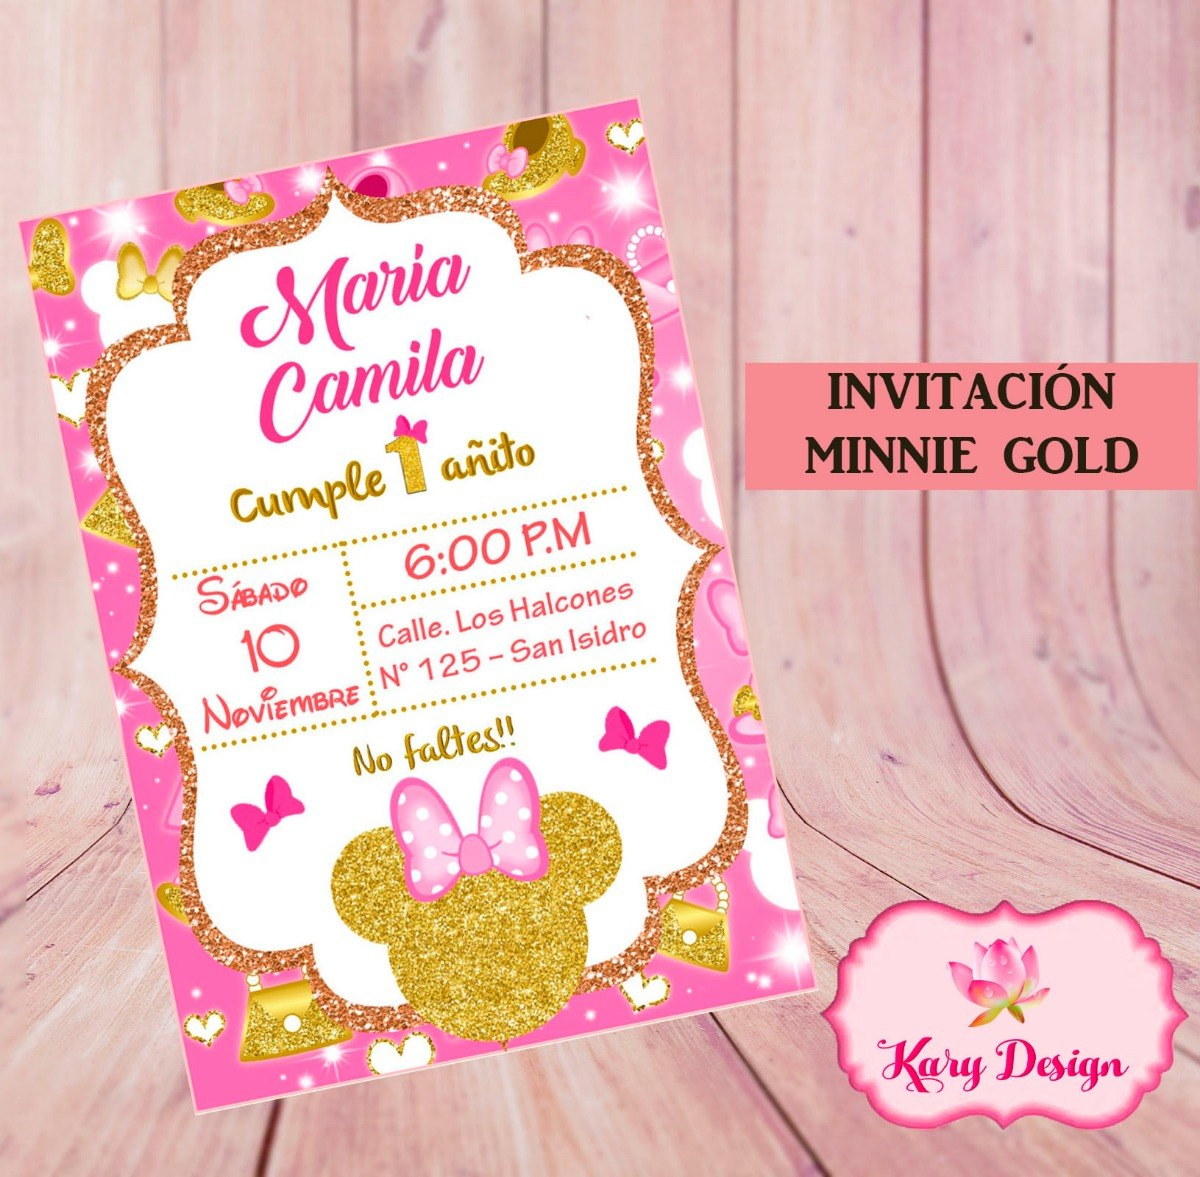 Invitación Imprimible Personalizada Minnie Gold